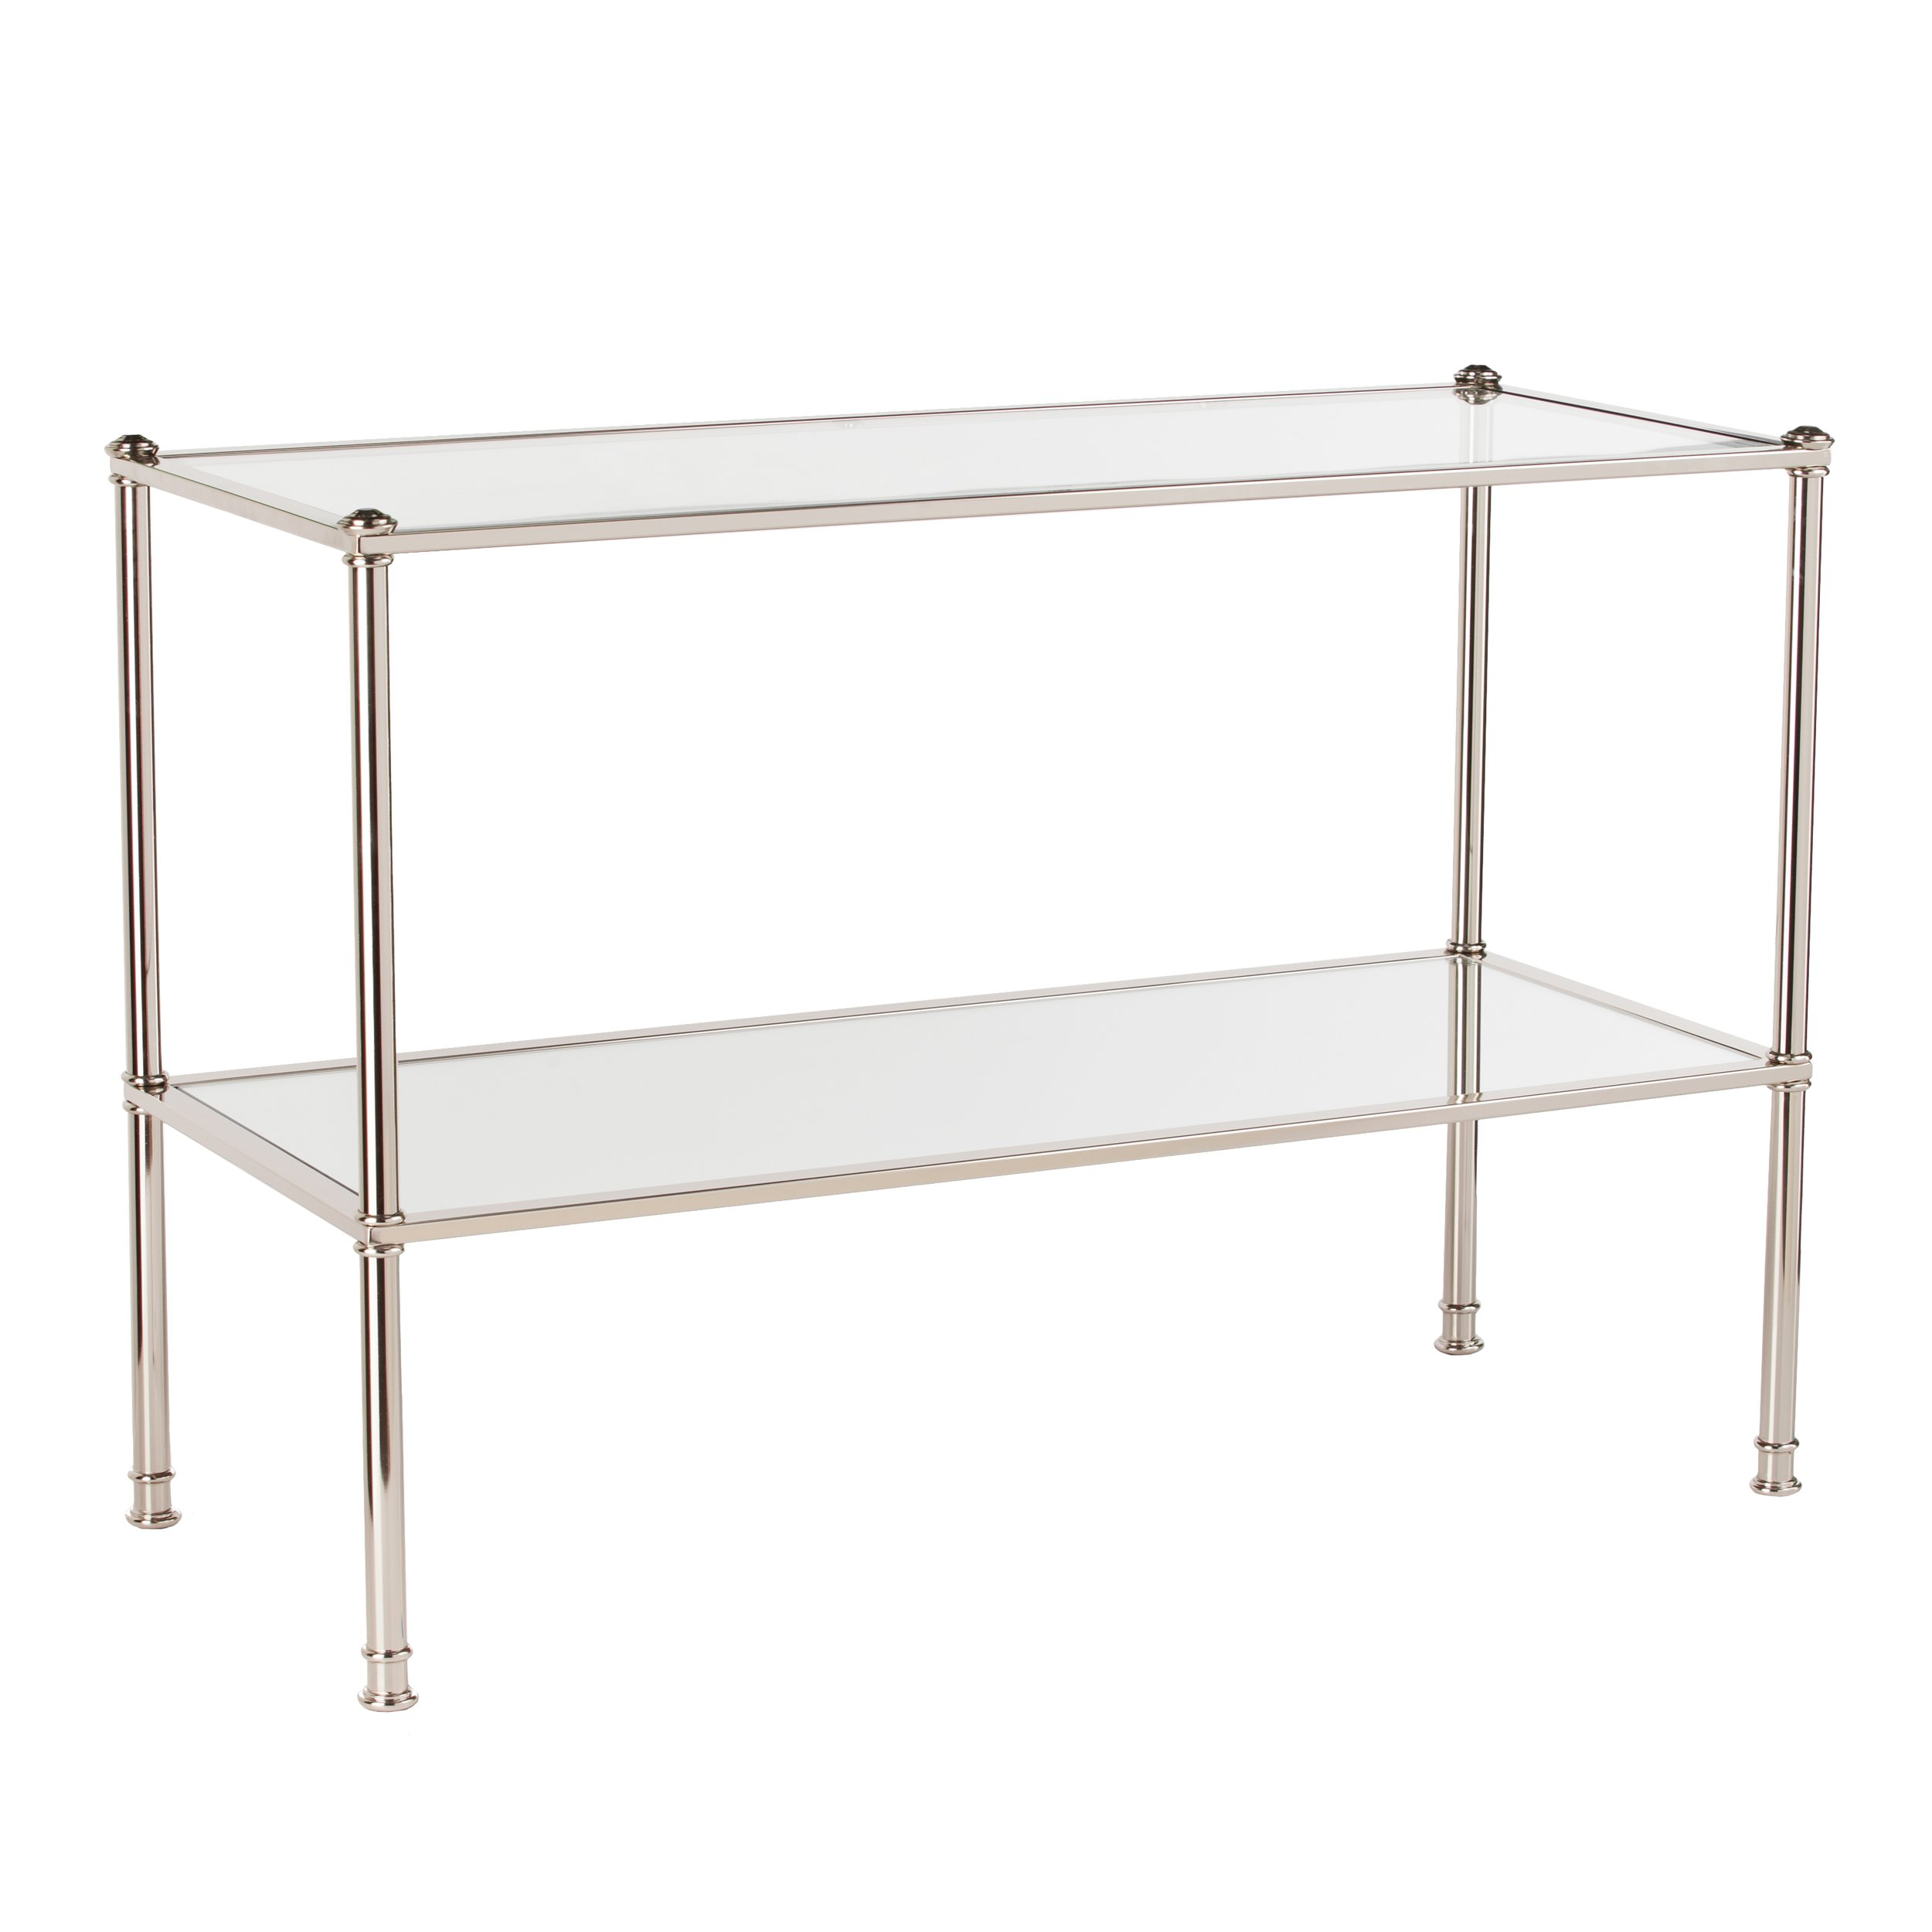 Paschall Console Table - 2 Tier Tempered Glass - Metallic Silver Finish Metal Frame by Southern Enterprises